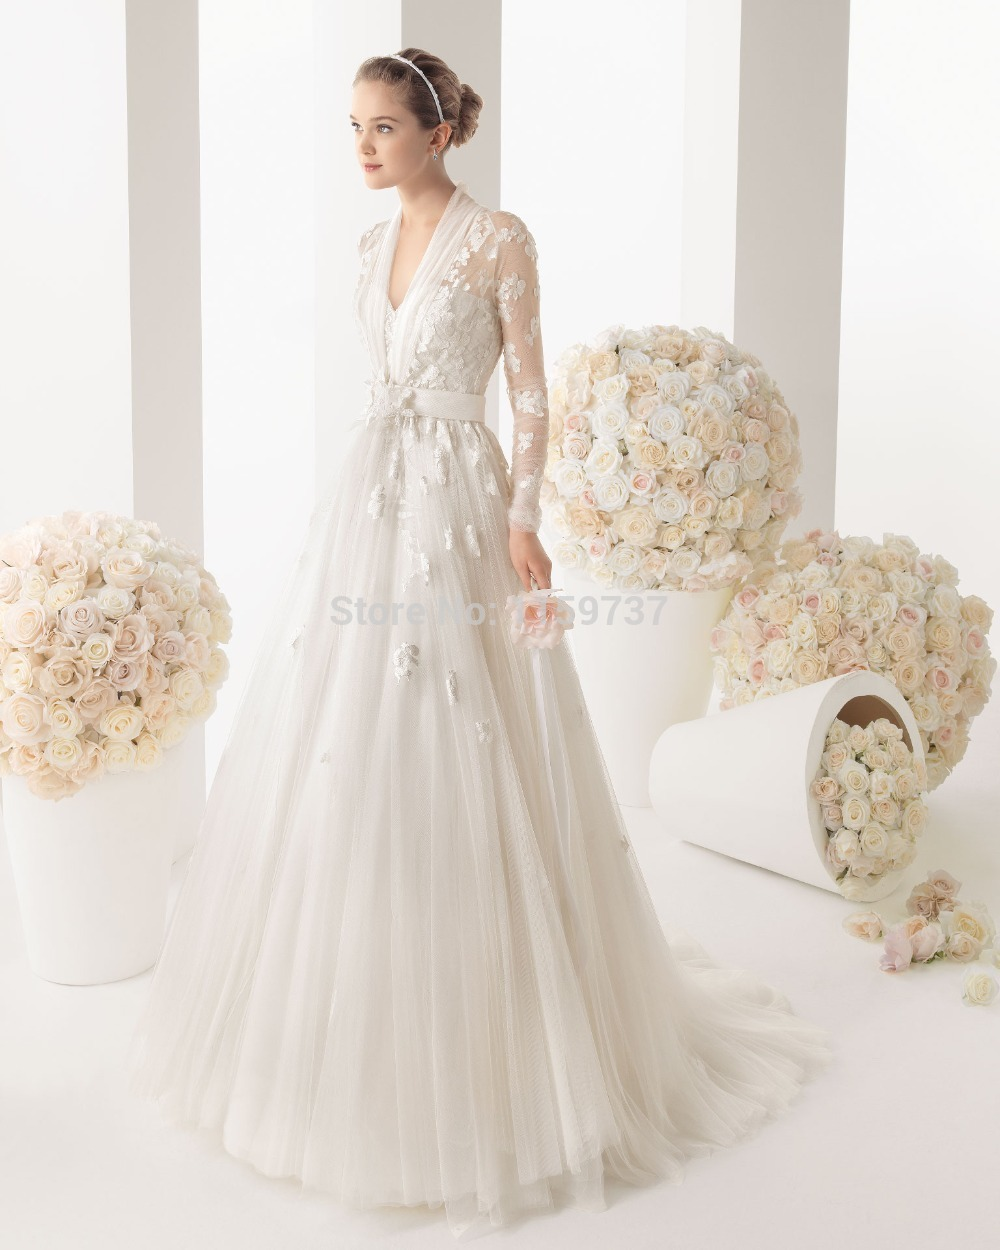 Beach Style Wedding Dresses Petite Women Vintage Inspired Nicole ...